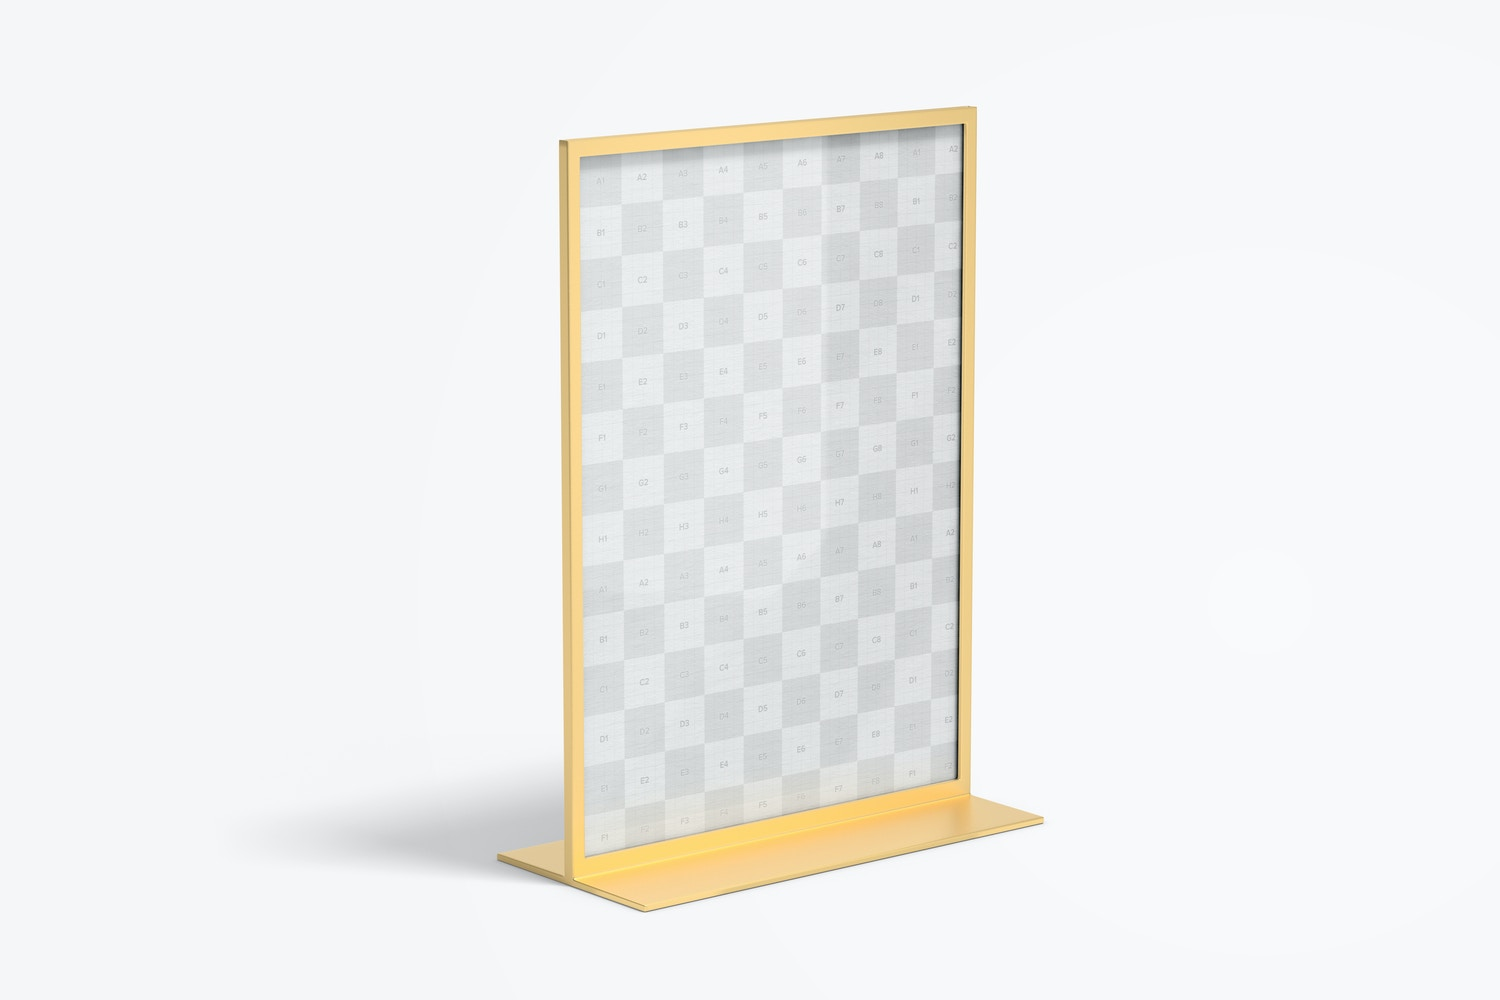 Double-Sided Poster Metal Desktop Display Mockup, Right View